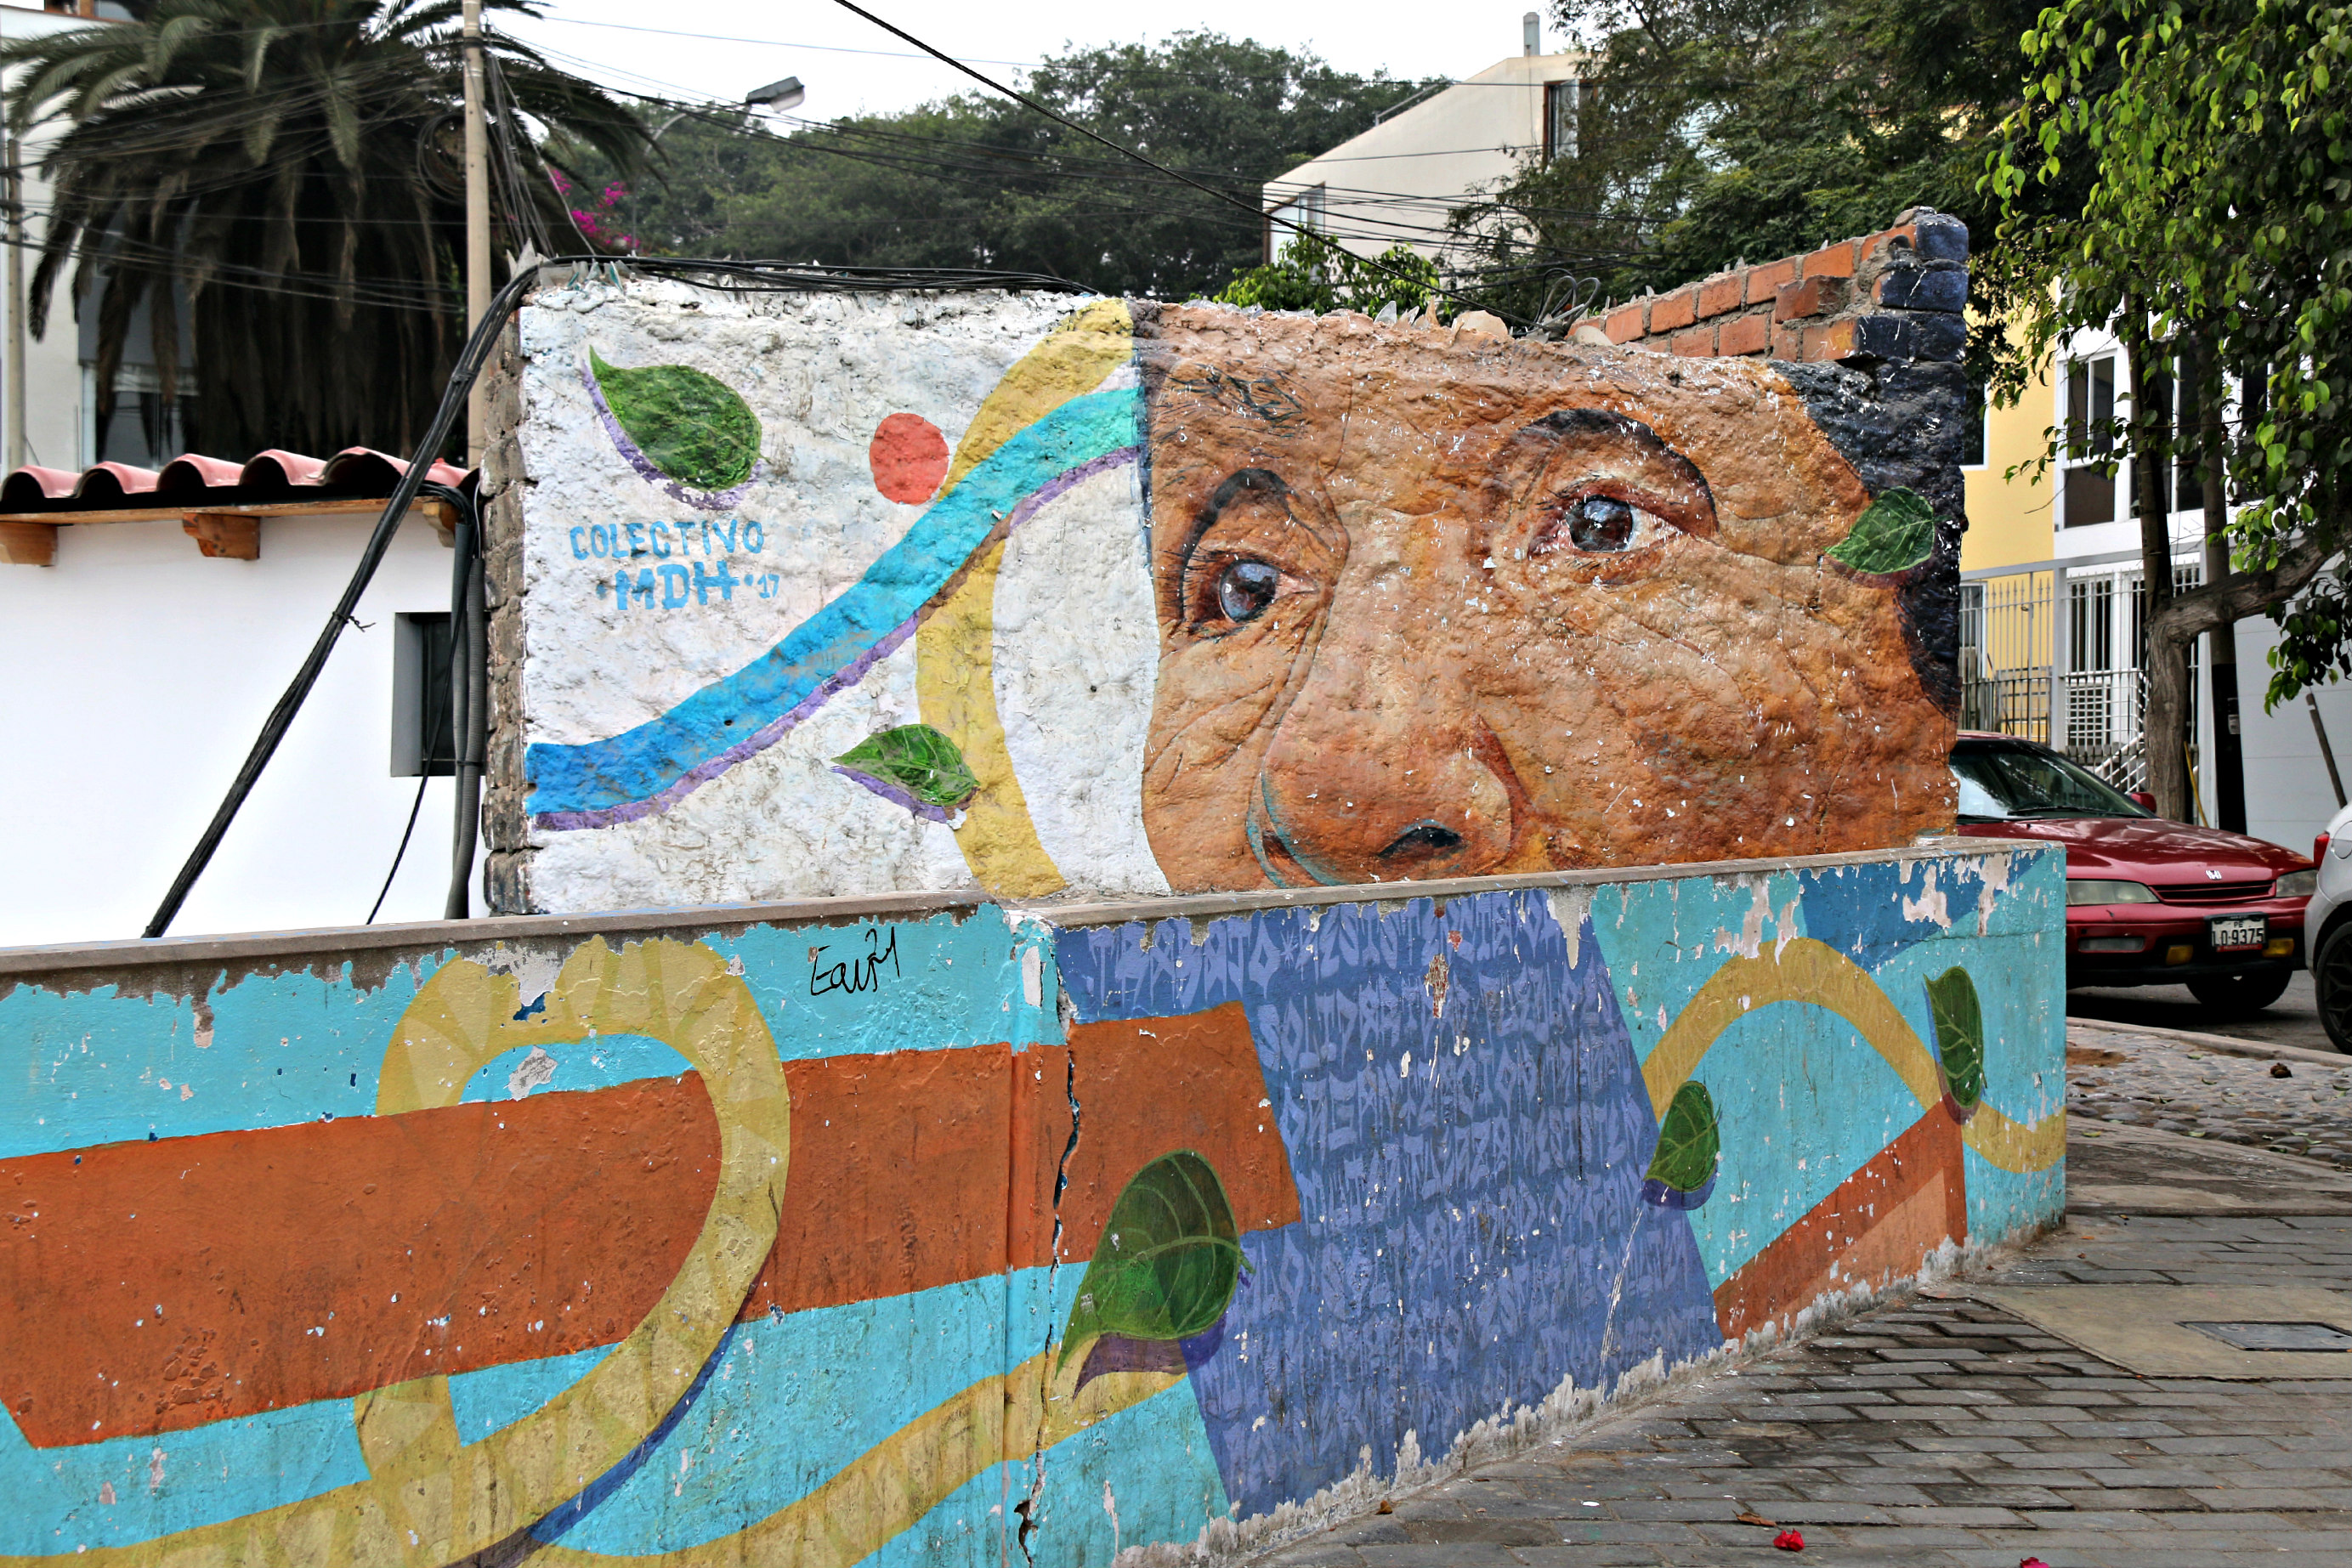 where to to find street art in Barranco, Lima along Oraya stairs Mural representing Mrs Victoria by Colectivo MDH